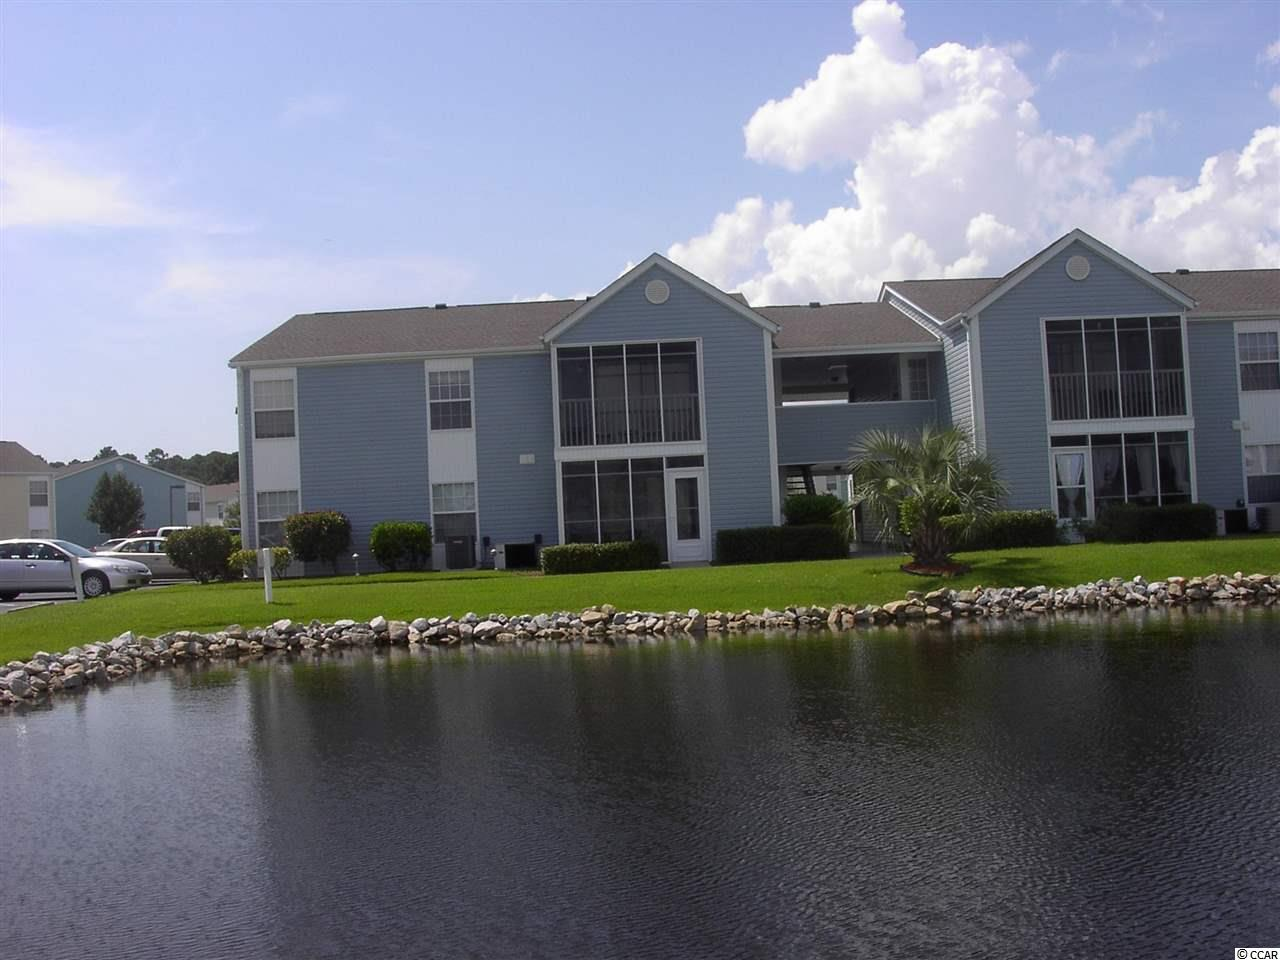 Condo in SOUTH BAY LAKES : Myrtle Beach South Carolina